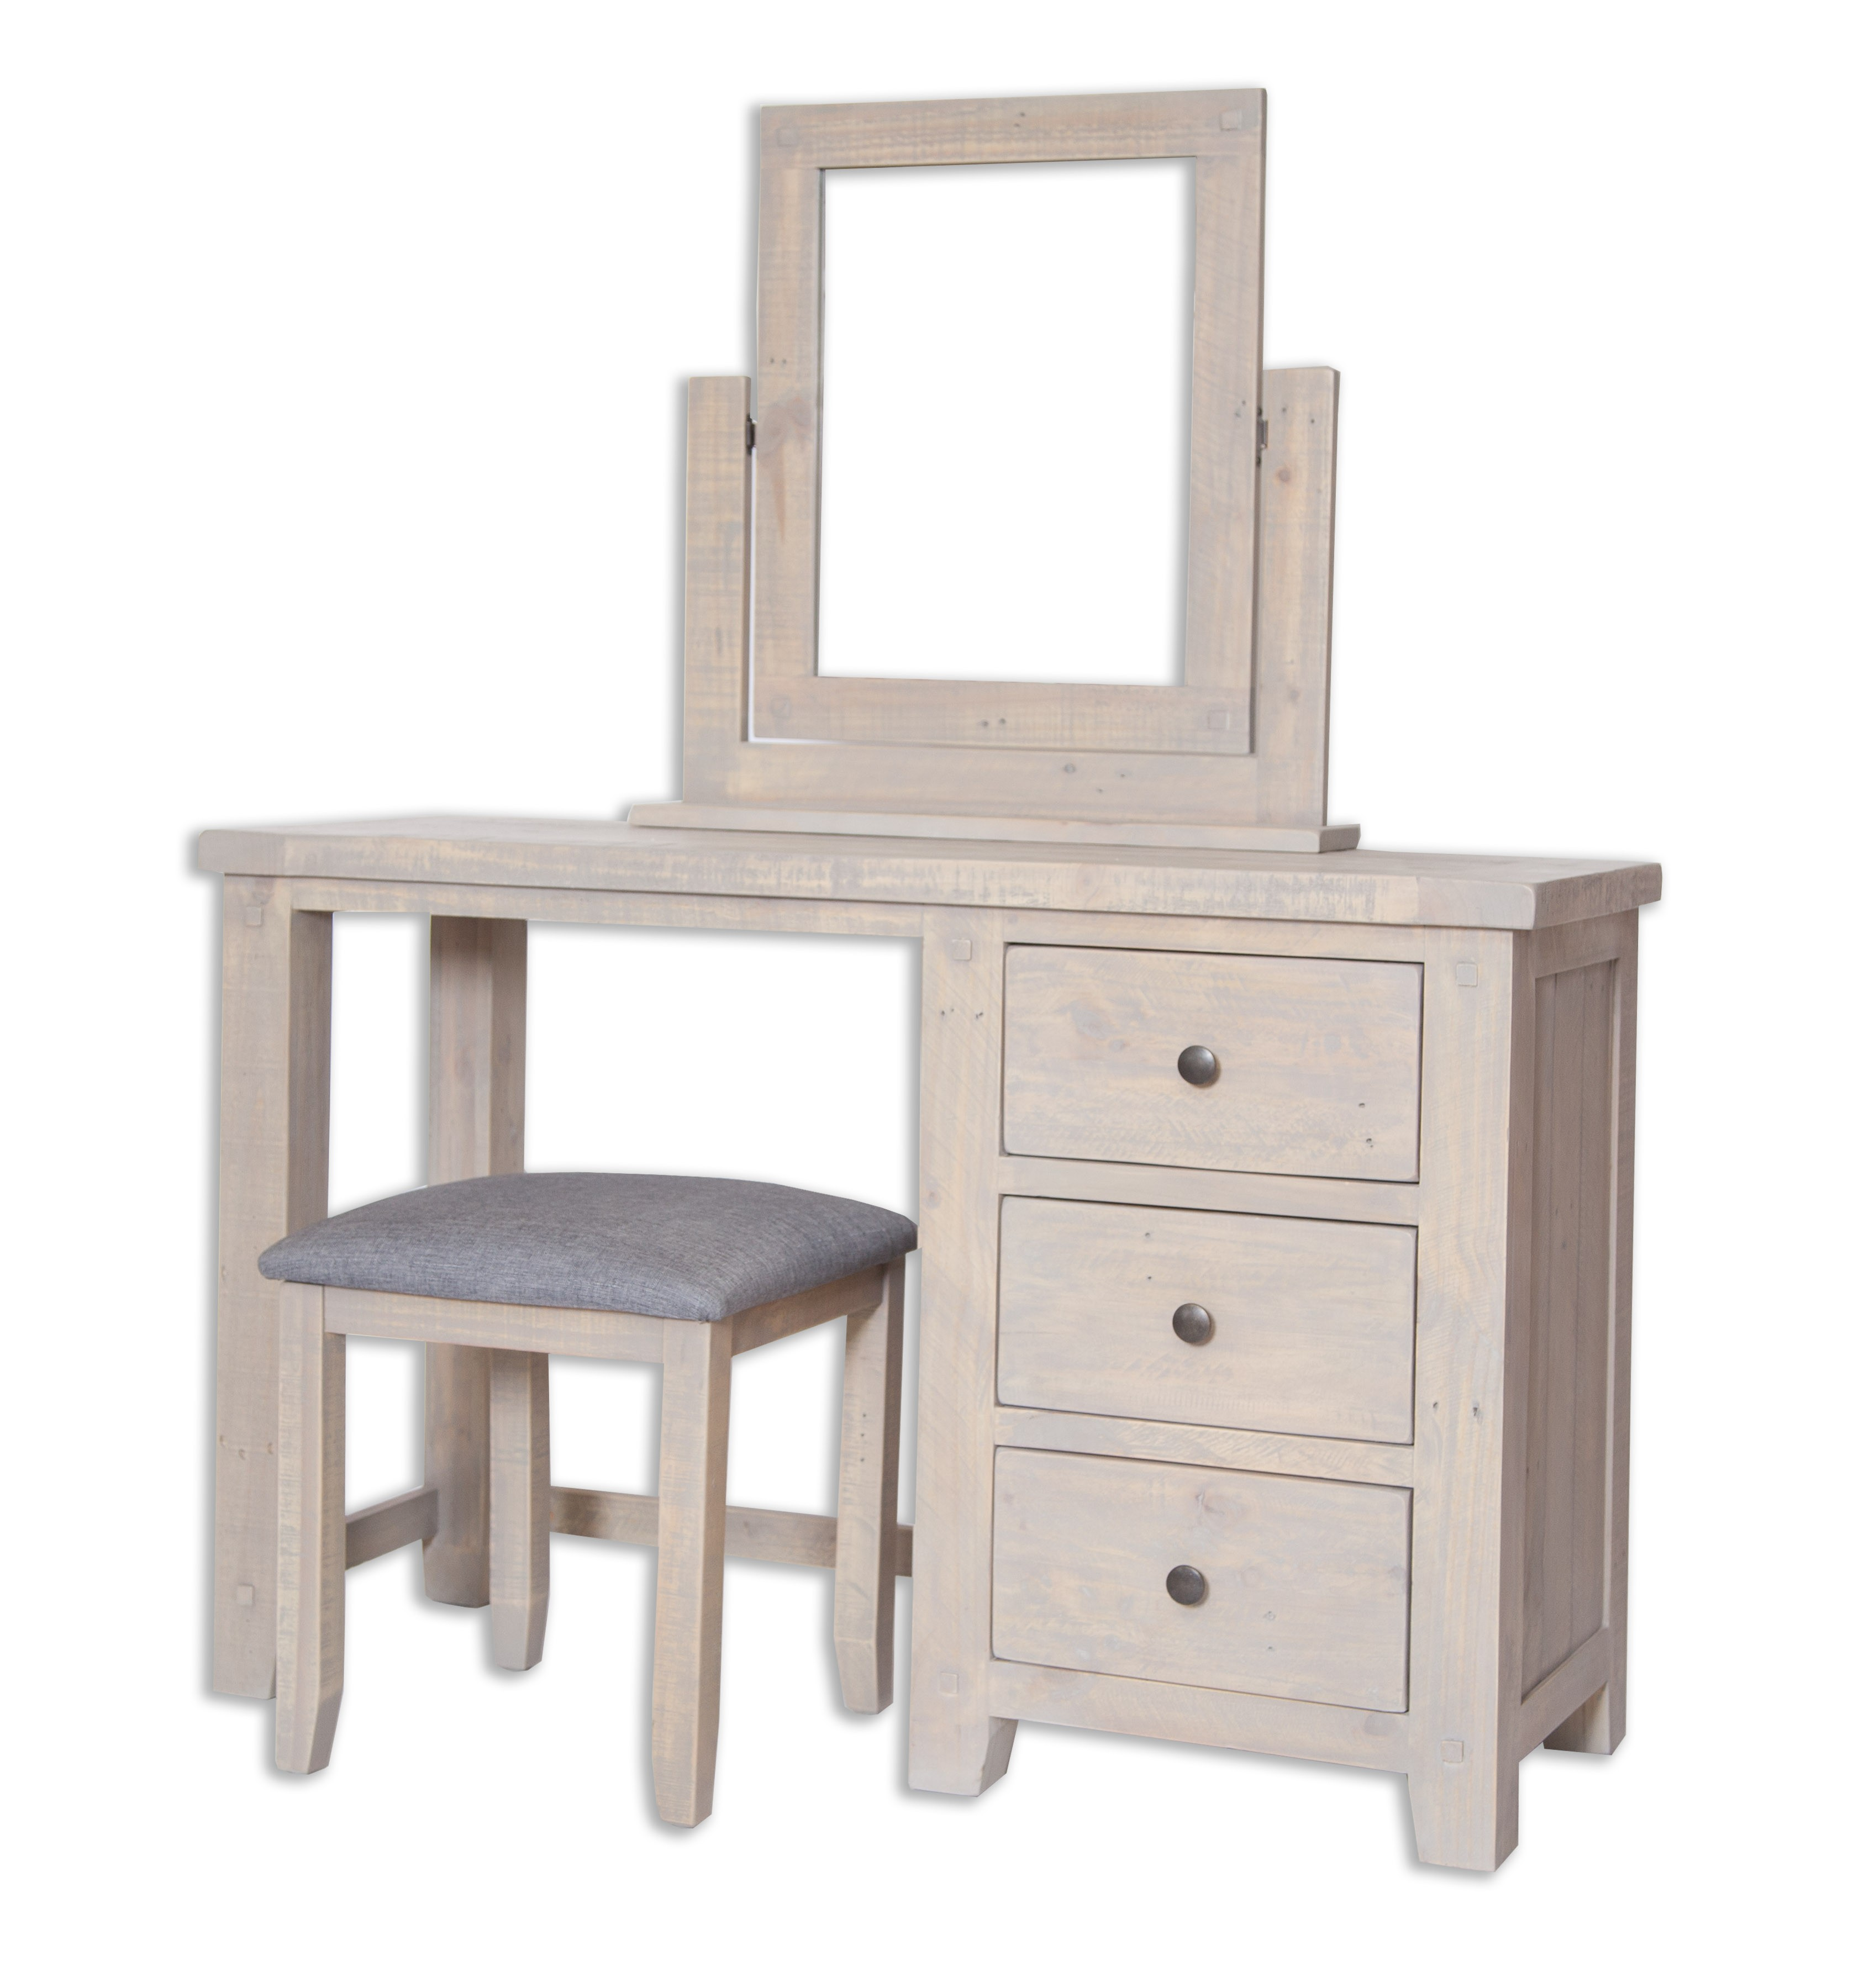 finest selection dda8f e0423 Cotswold Reclaimed Pine Dressing Table